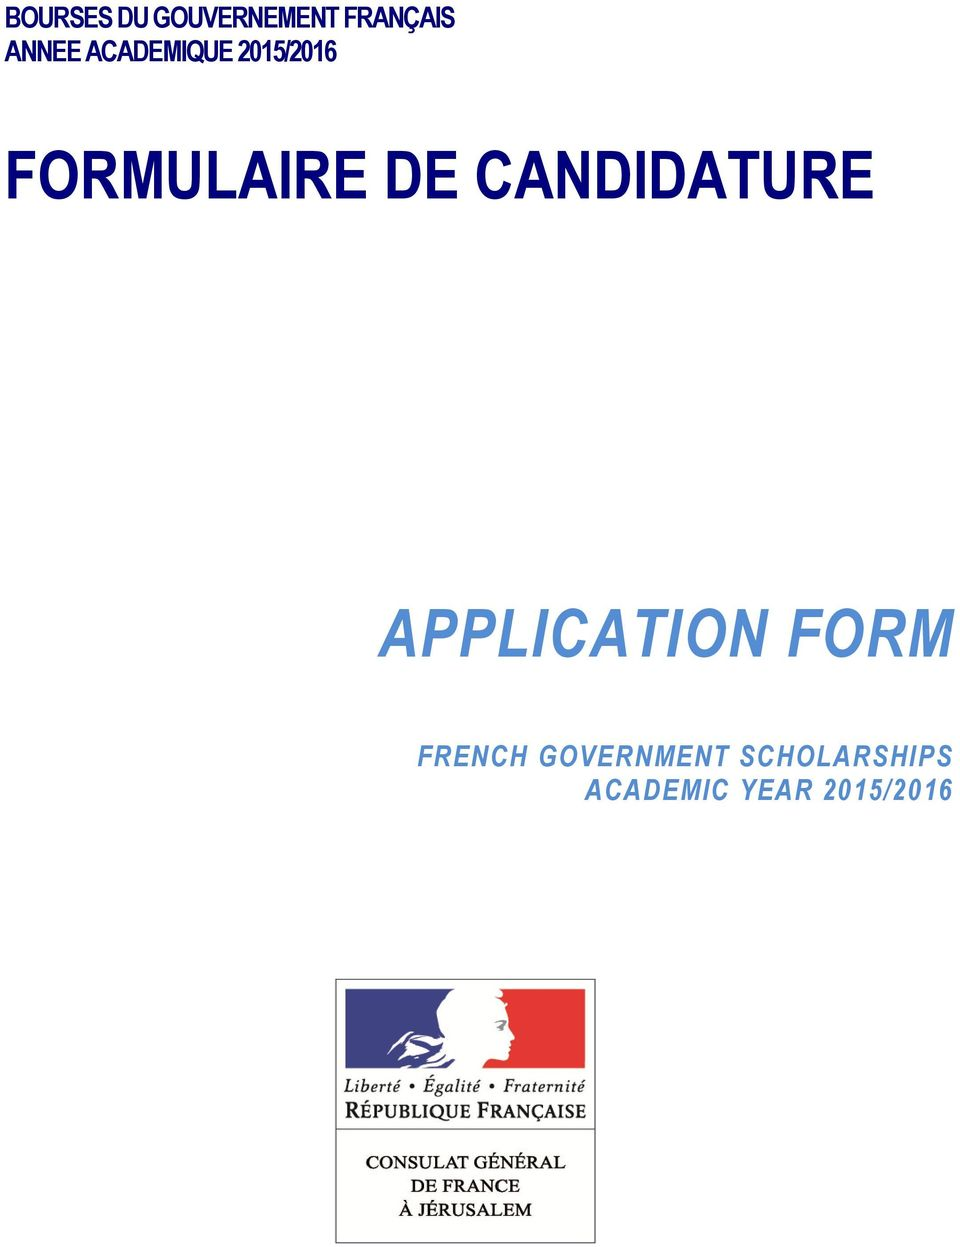 CANDIDATURE APPLICATION FORM FRENCH